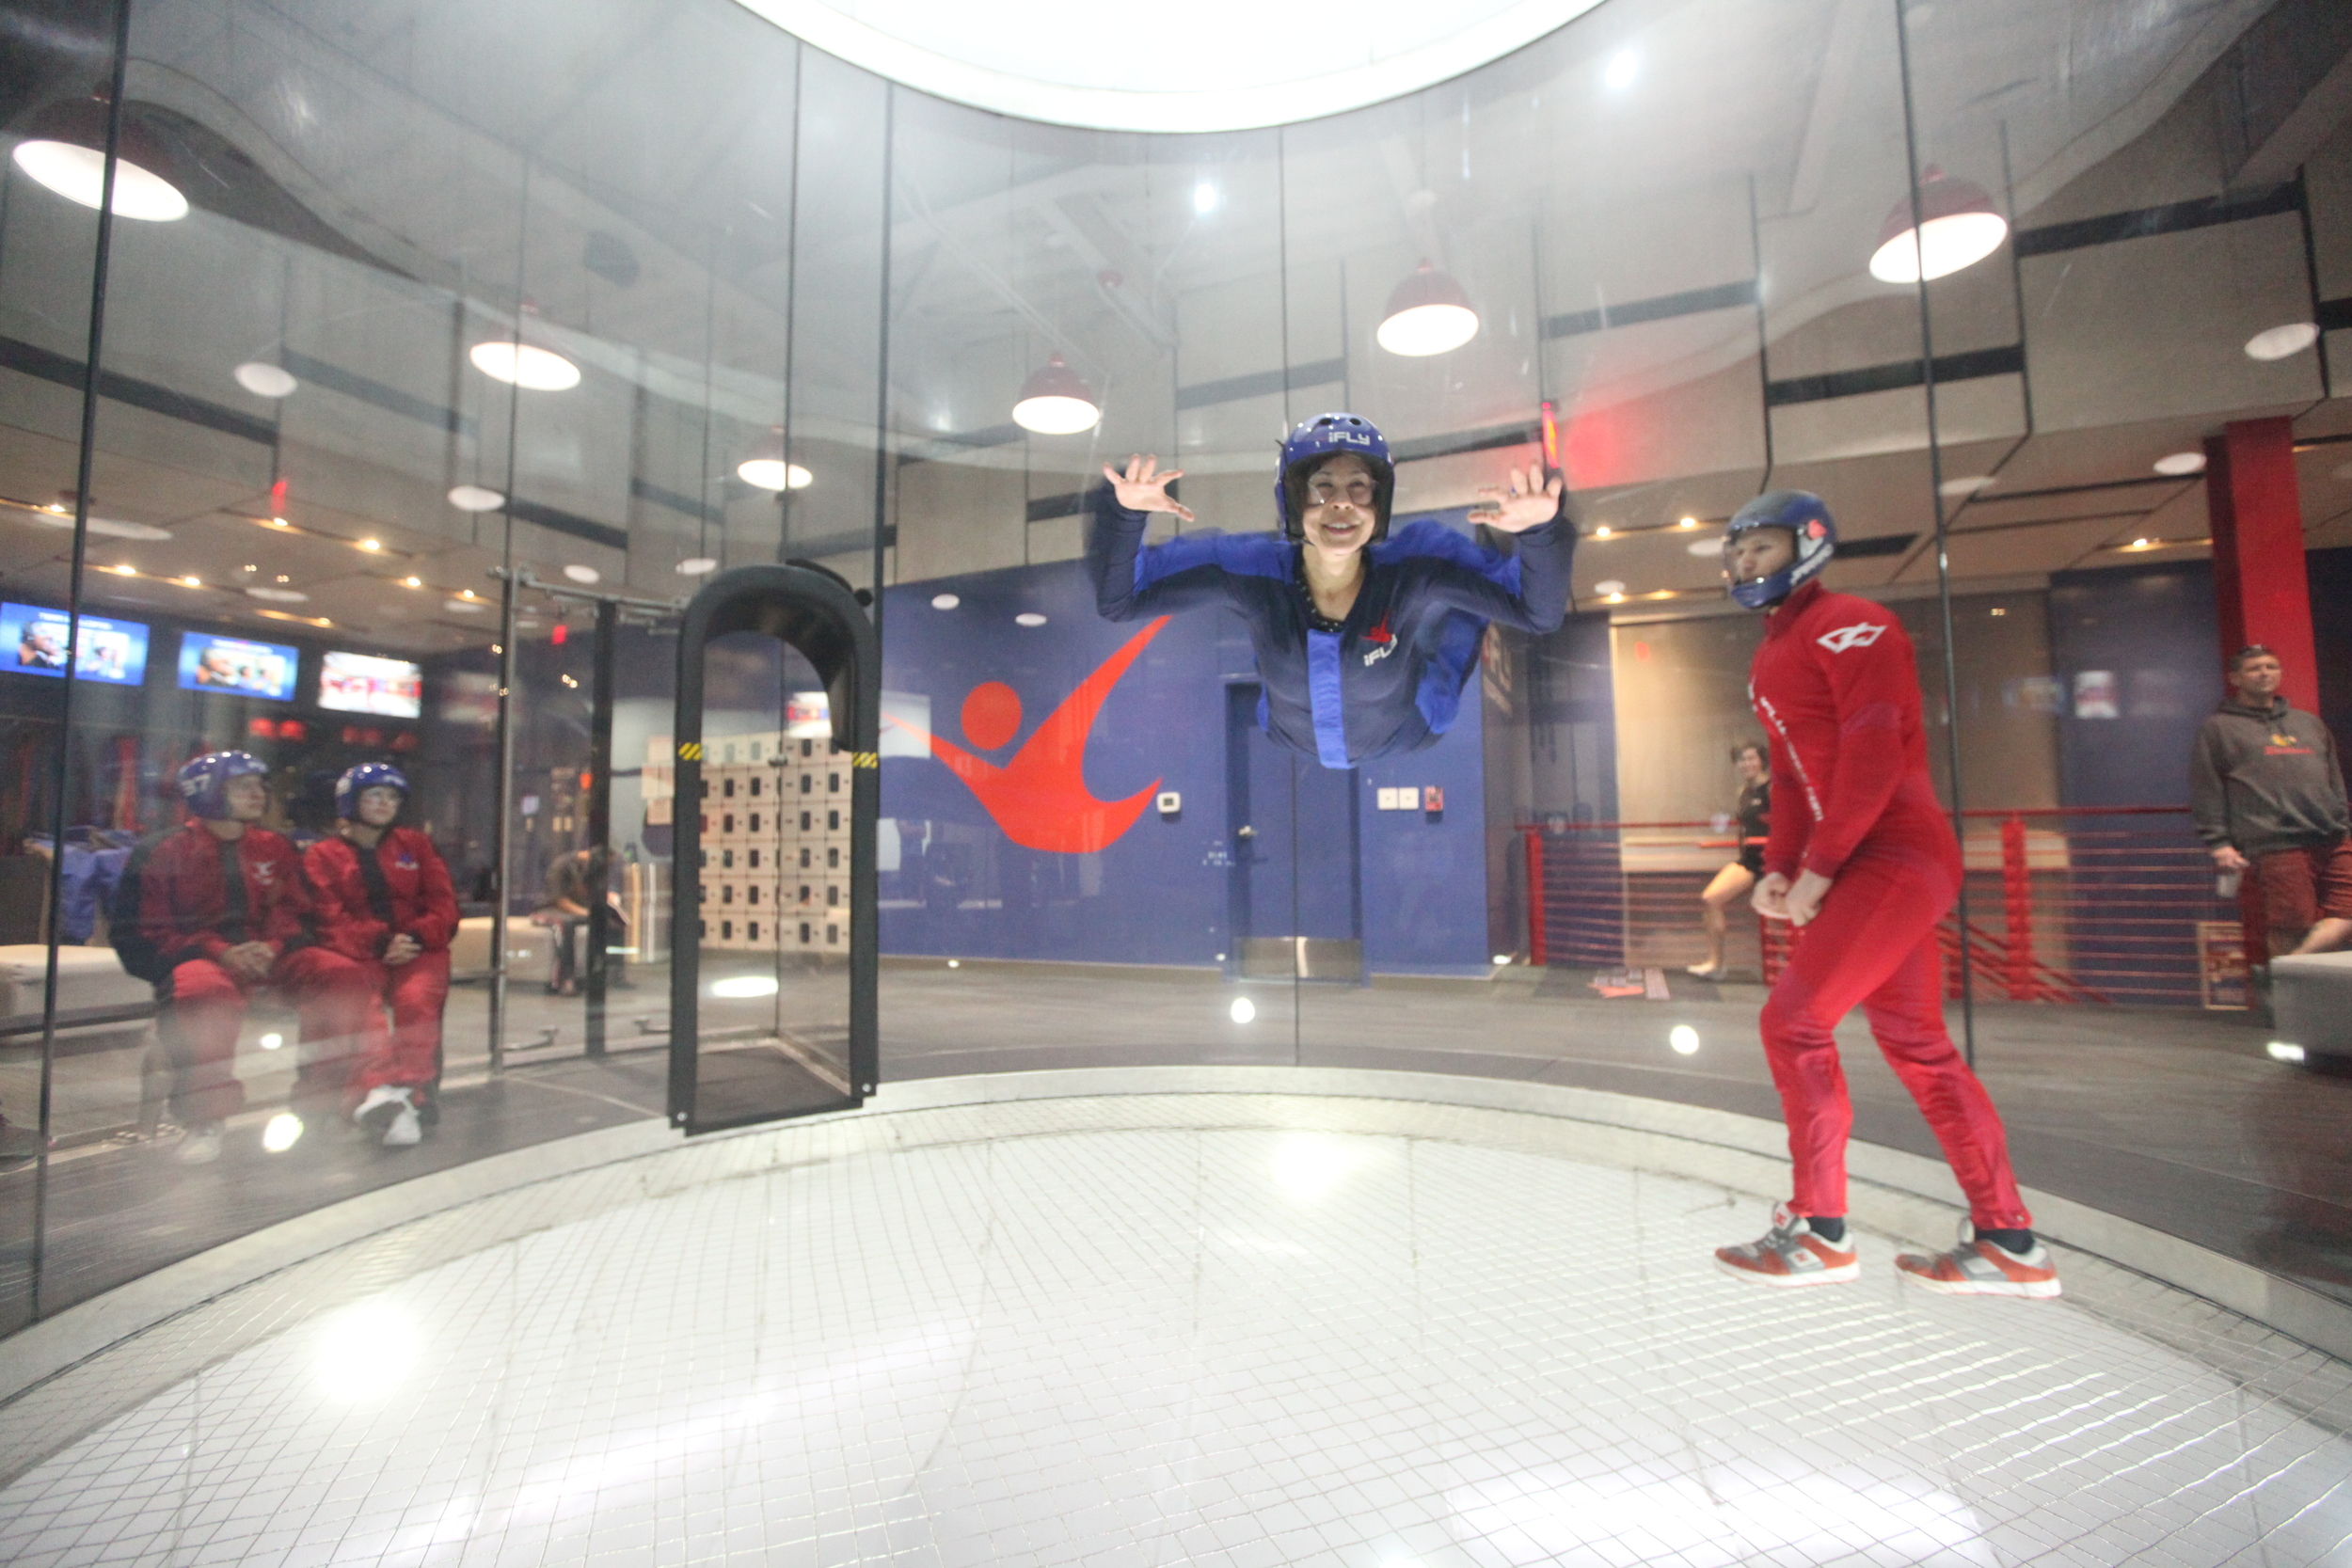 I flew at ifly!